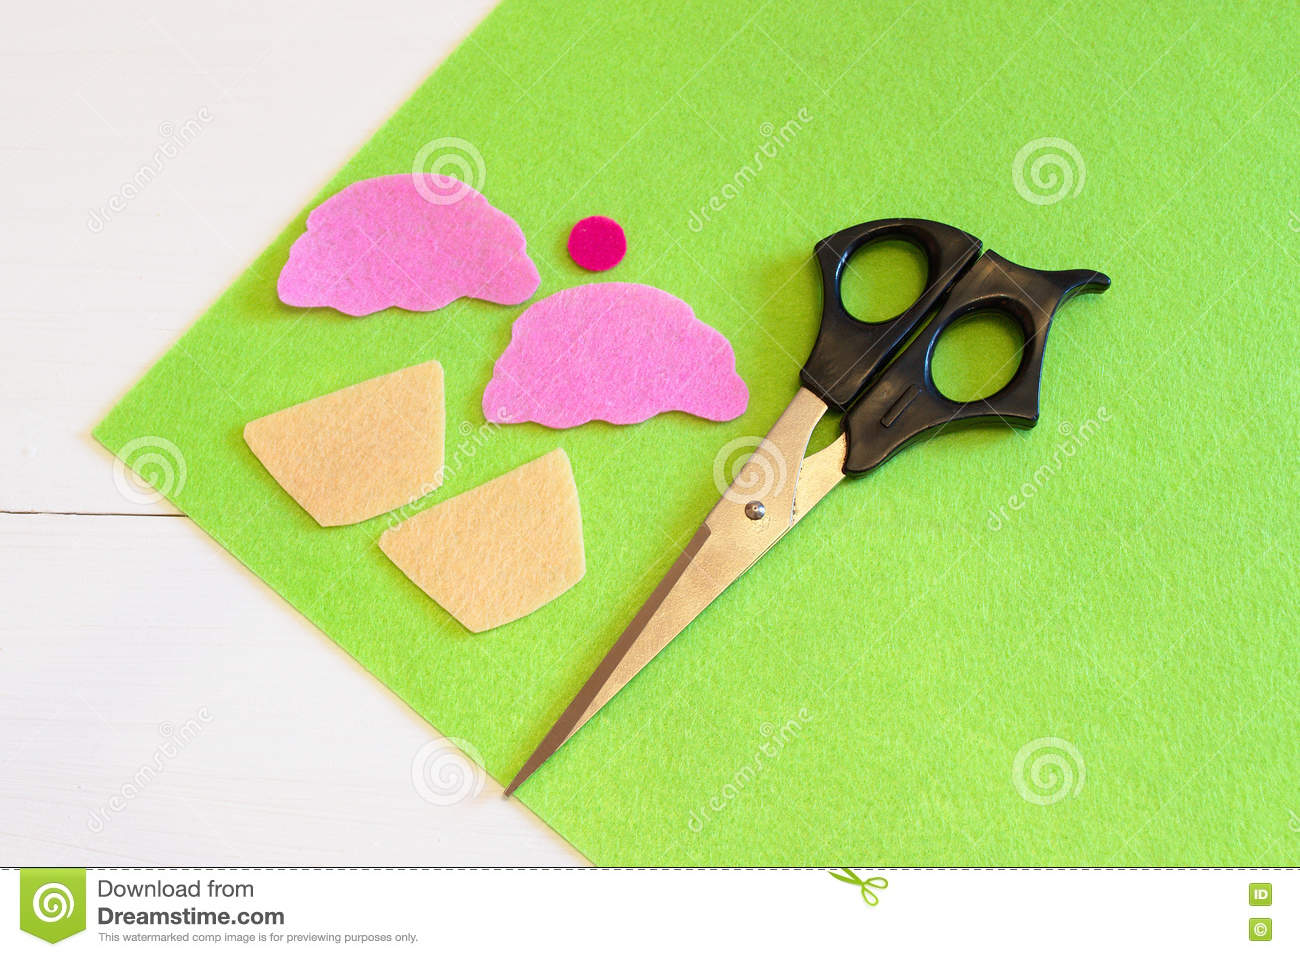 Download Cut Out Felt Details For Cupcake Toy, Scissors. Easy Kids DIY Project. Stock Photo - Image of fabric, felt: 76007168